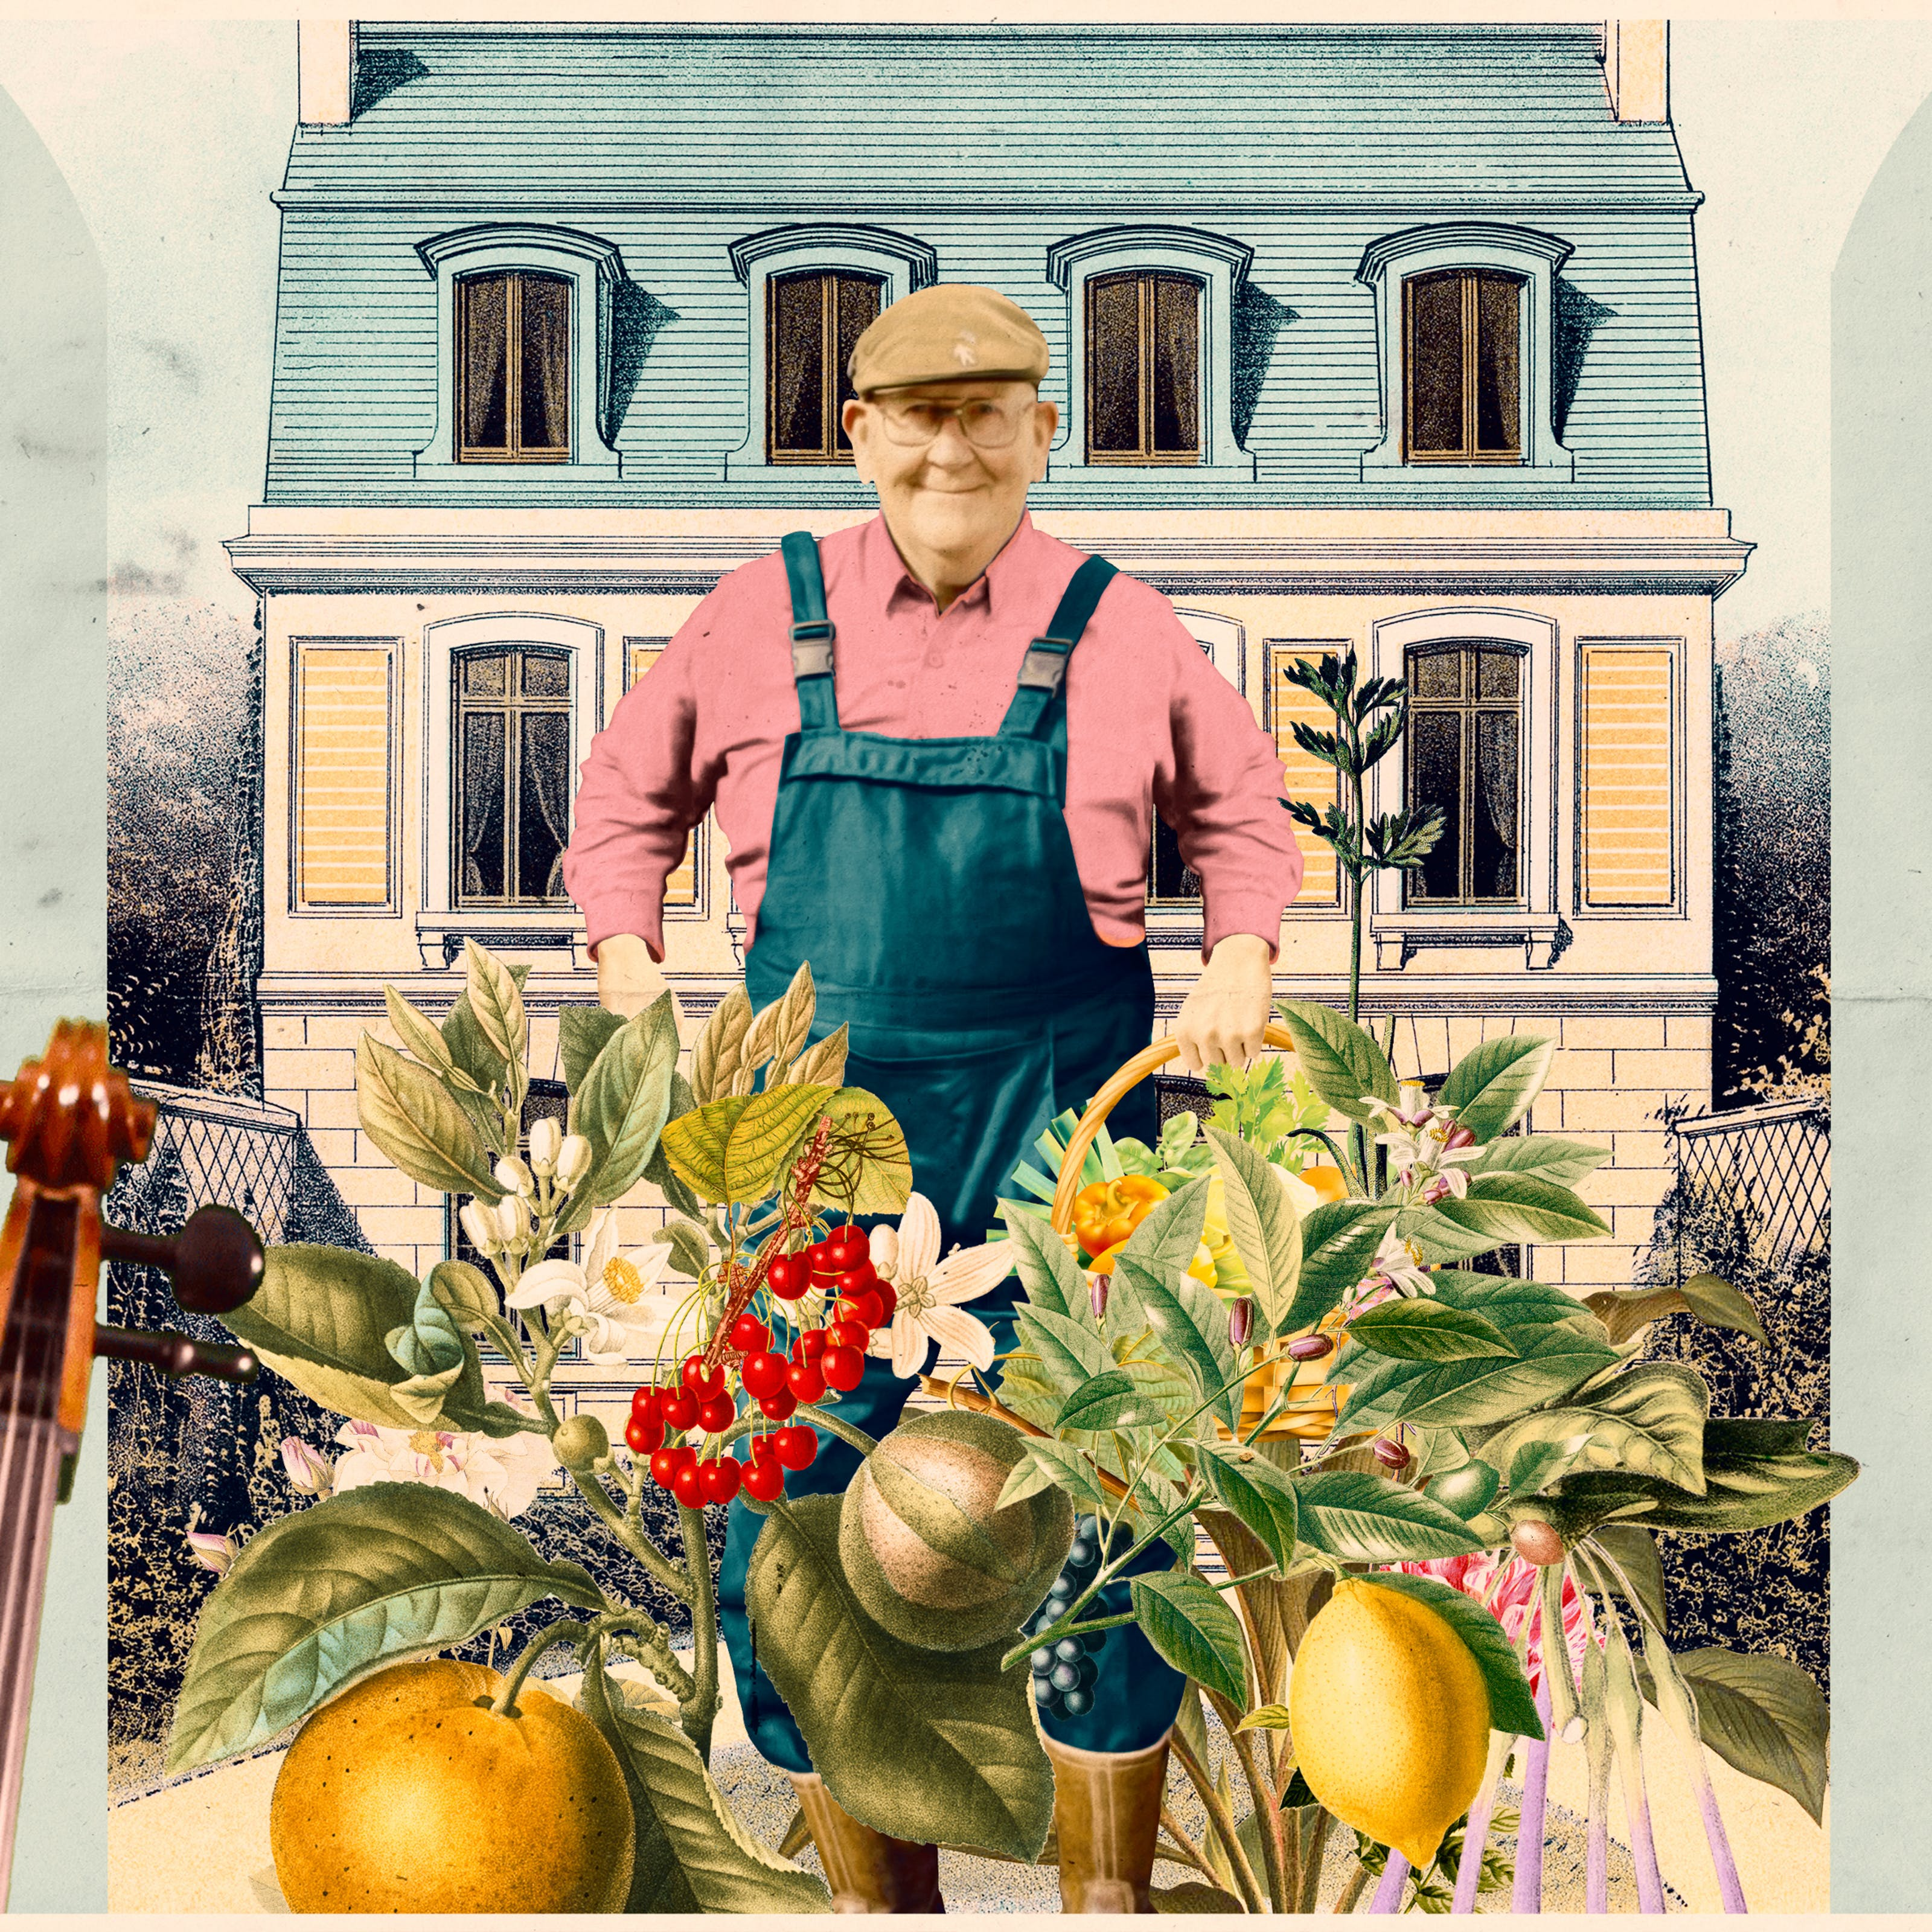 Mixed media digital artwork combining found imagery from vintage magazines and books with painted and textured elements. The overall hues are light blues, pinks, creams, greens and yellows. At the centre of the artwork is a photograph of an older man wearing glasses in a flat cap, smiling towards the viewer. He is wearing a pair of blue dungarees and a pink long sleeve collared shirt. Below and in front of his legs is a great collage of fruit and vegetables, flowers and leaves. Behind him in the background is a drawing of 3 storey home. The top floor is in the tiled roof which is tinted blue. To the left of the image is the profile of an older man with grey hair looking down towards the ground, facing the centre of the image. He is pictured from the chest up and is wearing a blue suit jacket, white shirt and a red tie. Behind him is an old illustration of a grand library room with large bookshelf and old furniture. In front of his nose is the neck and pegbox of a stringed instrument, probably a cello, appearing into view. To the right of the image is the profile of an older man with grey hair looking down towards the ground, facing the centre of the image. He is pictured from the chest up and is wearing a yellow cycling shirt and a cycle helmet with orange lights around the side at the back. Behind him is an illustration of a large mountain scene with rock faces, valley and the buildings in a small village.